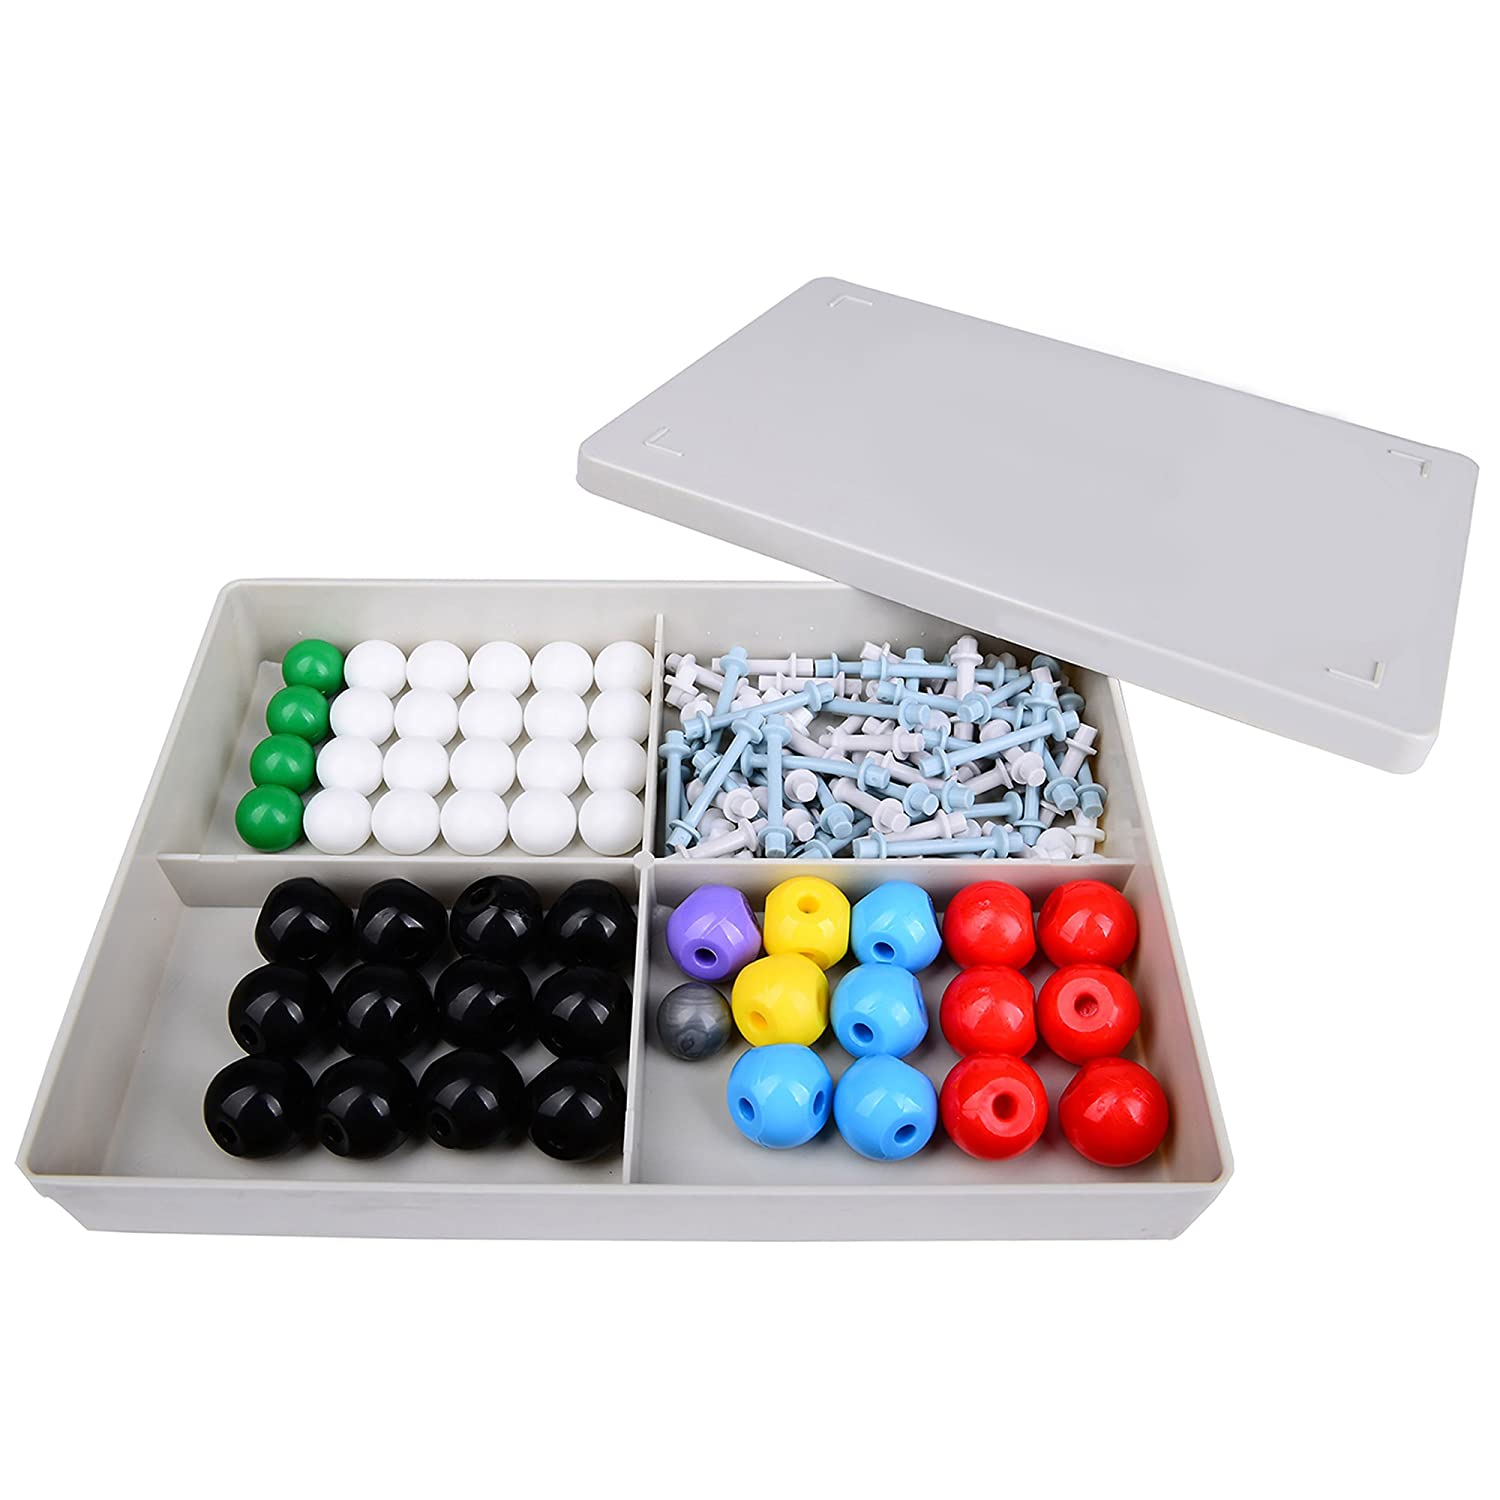 Wisehands Organic Chemistry Molecular Model, Student and Teacher Set (50 Atom Parts) with Grey Box